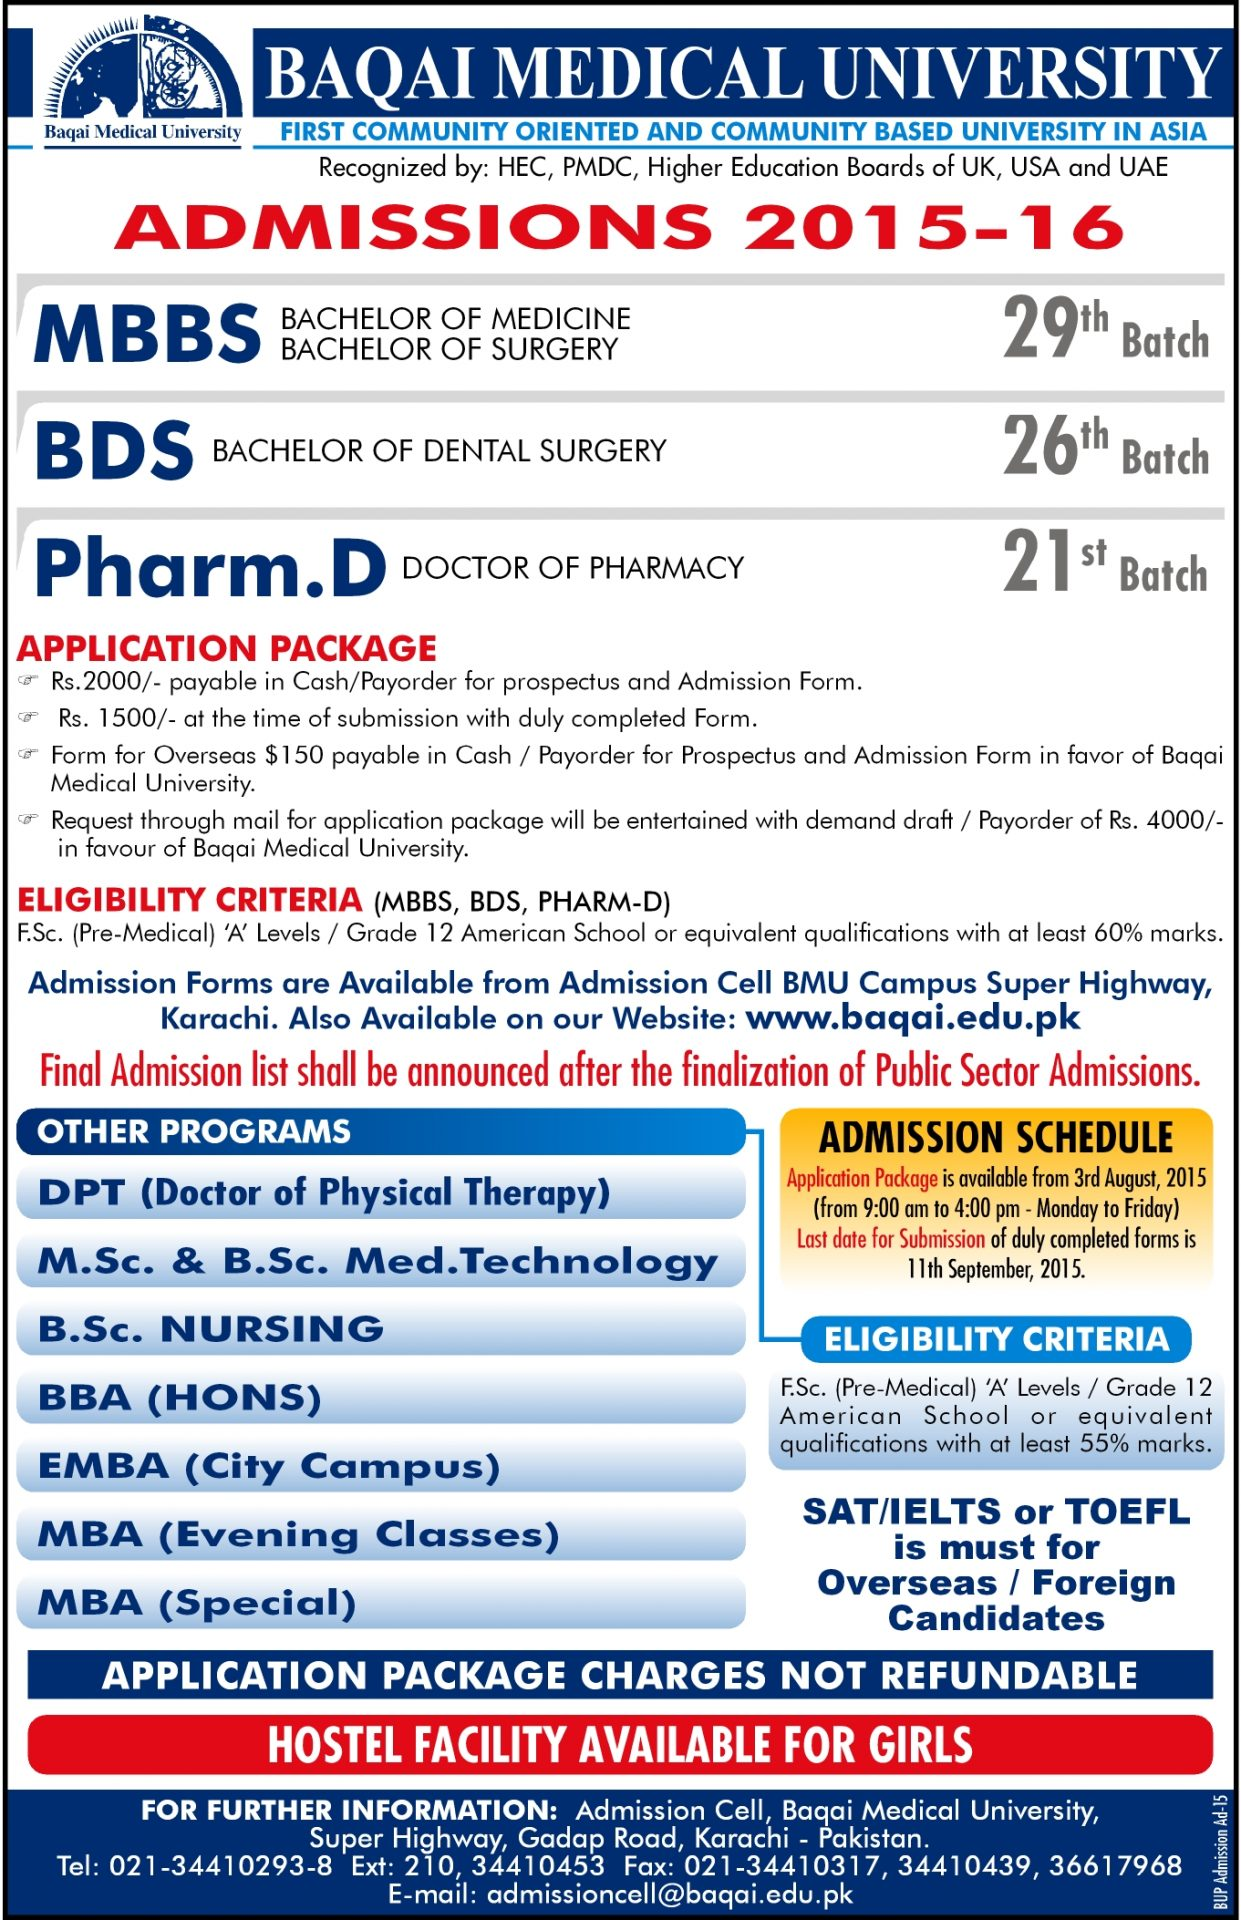 Baqai Medical University Admissions 2015 MBBS, BDS, Pharm D